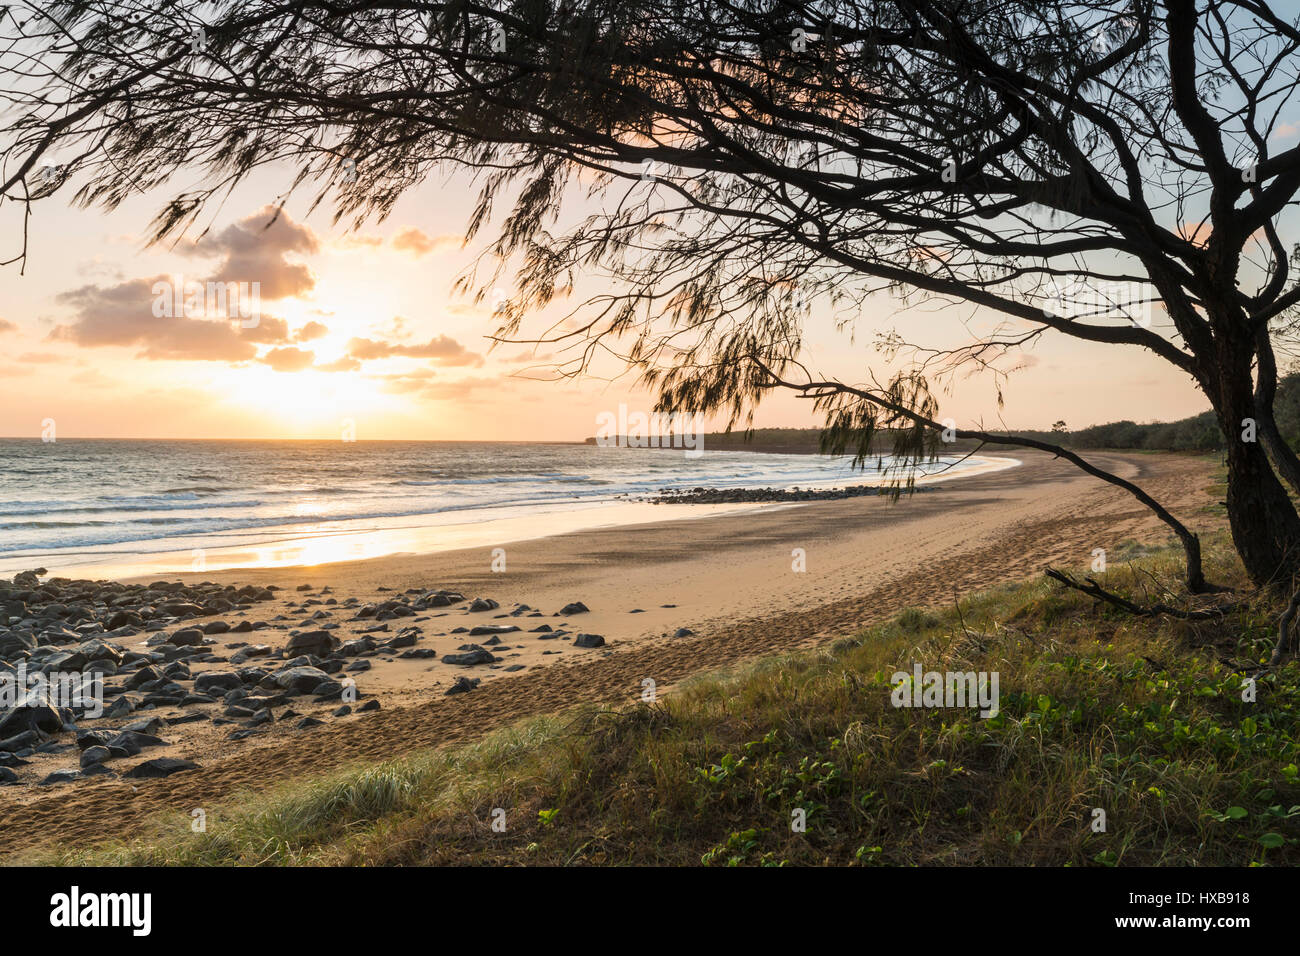 Sunrise along Mon Repos beach.  Bundaberg, Queensland, Australia - Stock Image